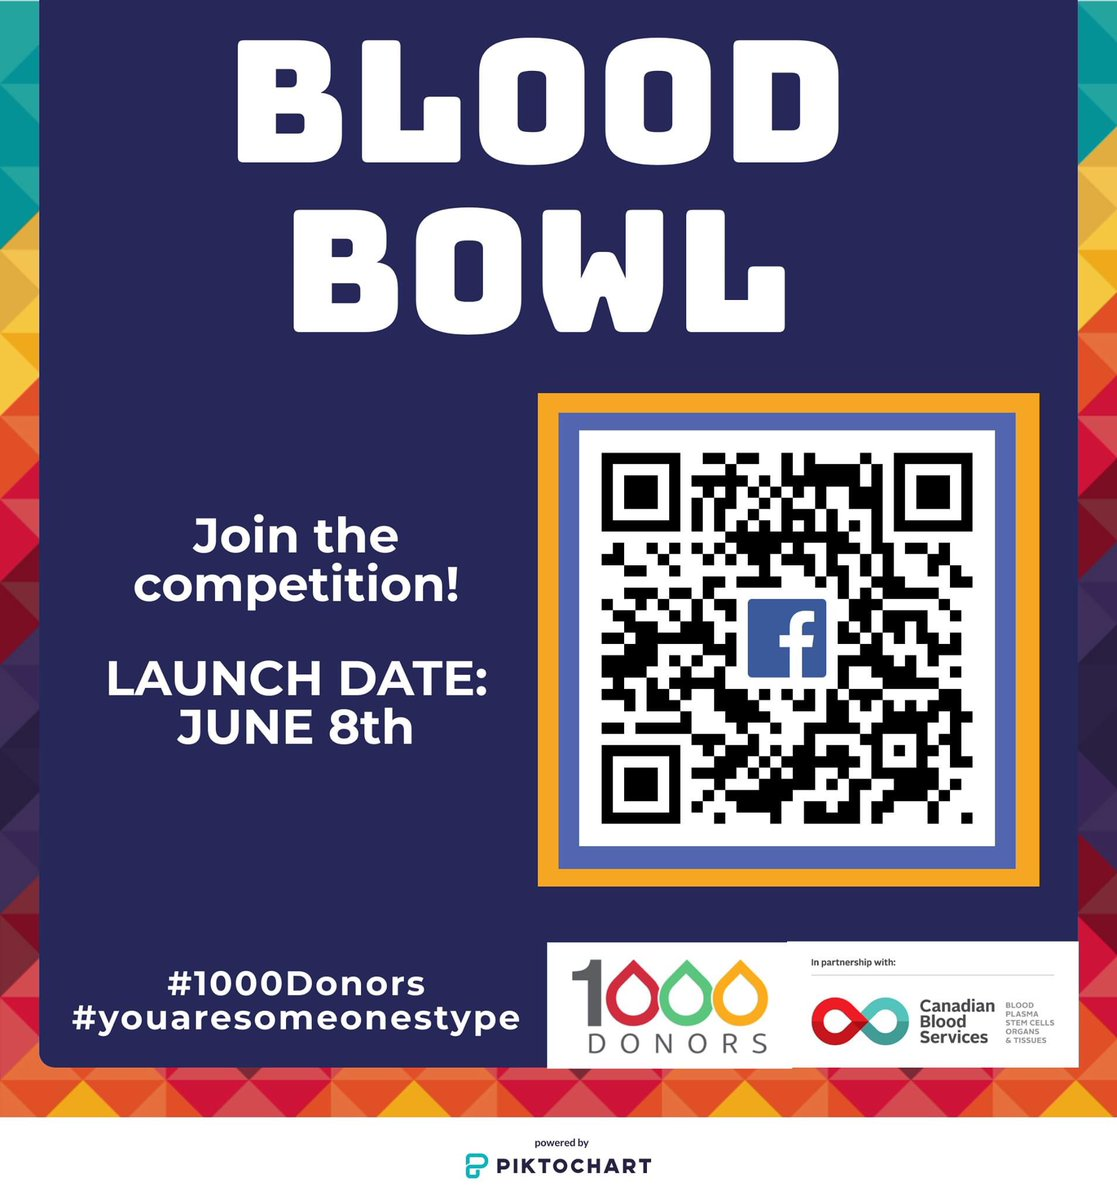 To celebrate #NationalDonorWeek, #1000Donors is launching our Blood Bowl! If you are part of a fraternity, sorority, University athletic team, high school or any group who might be interested to take part, message us or like the facebook event page at: https://t.co/c6a79h1W77 https://t.co/d0Jzb5Gqfm